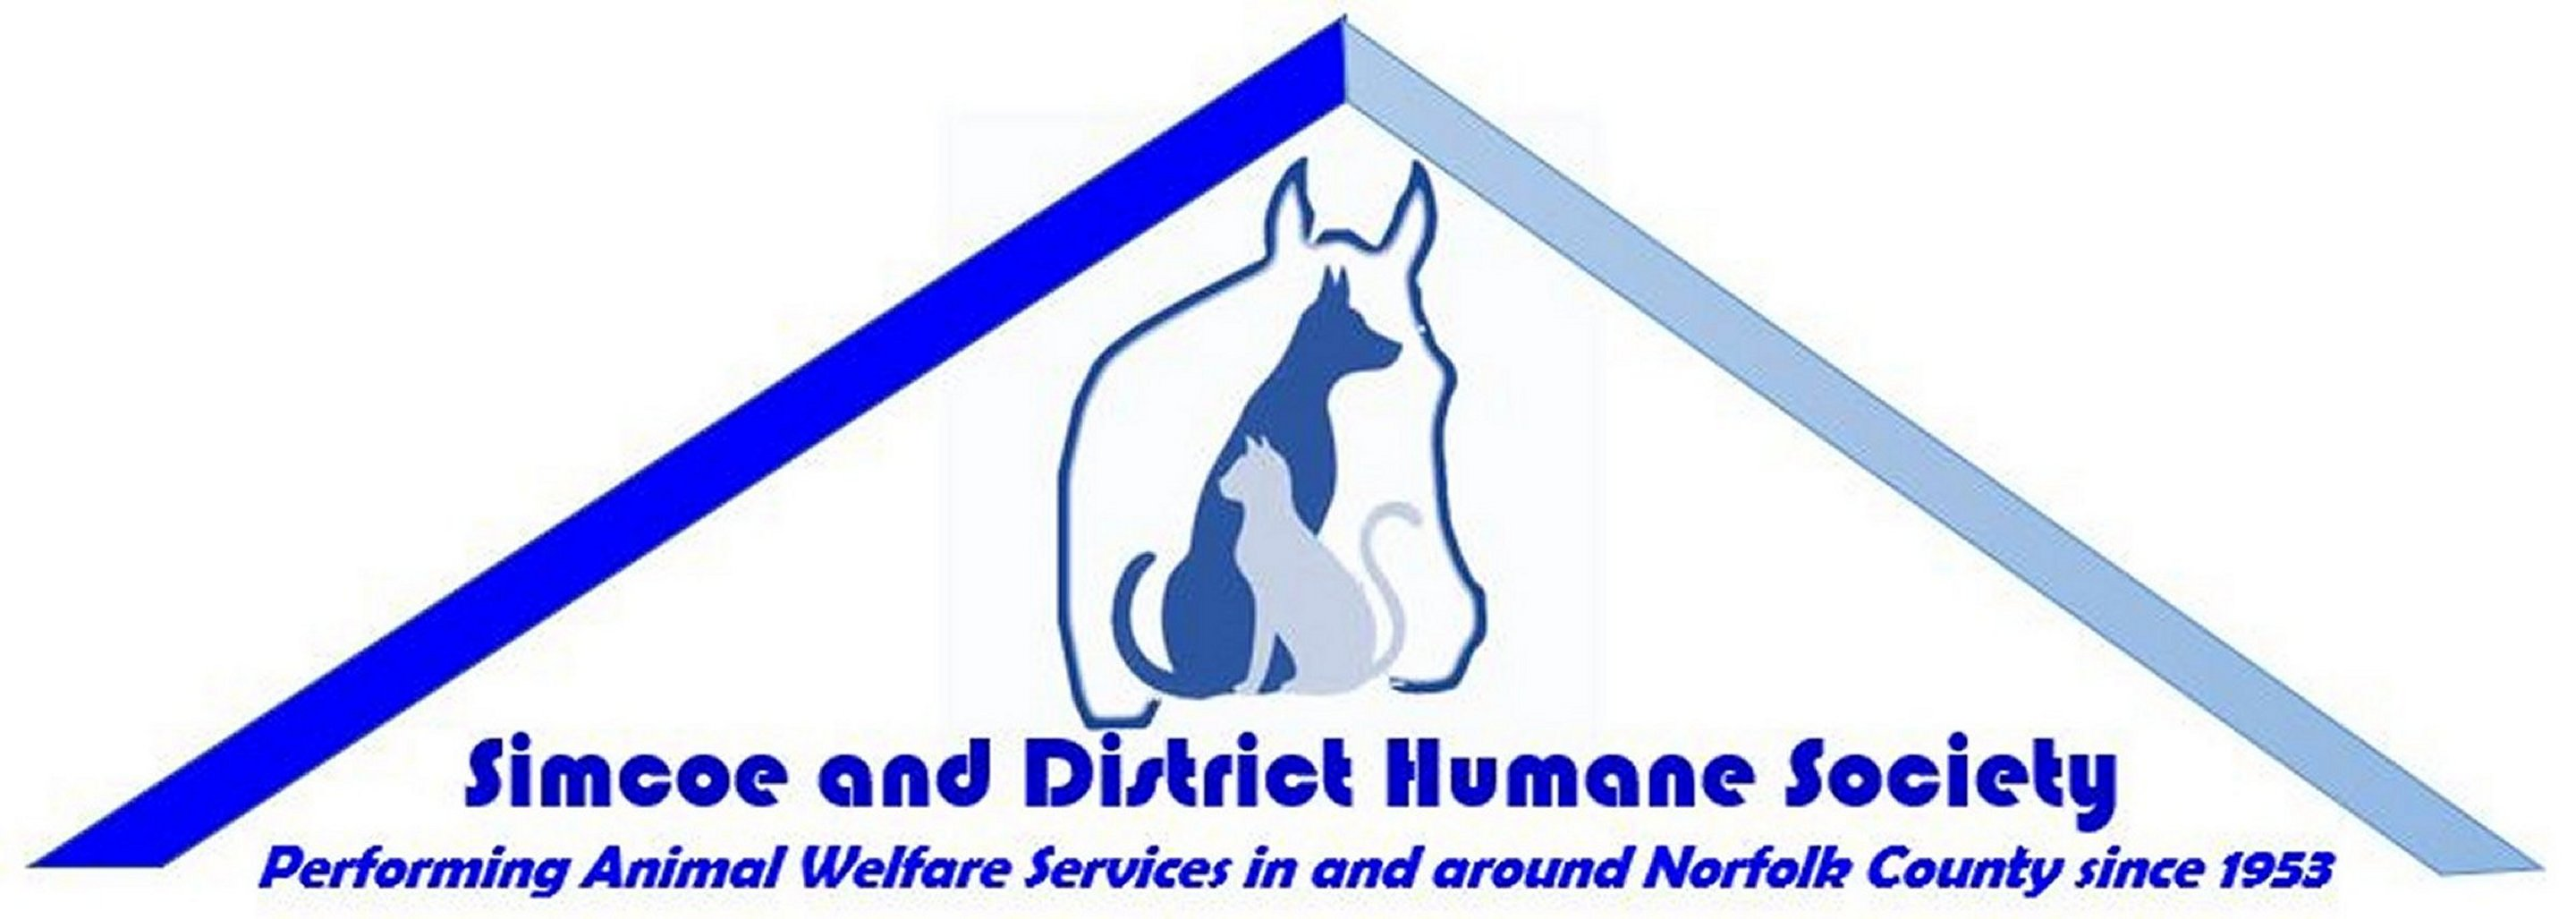 Simcoe and District Humane Society